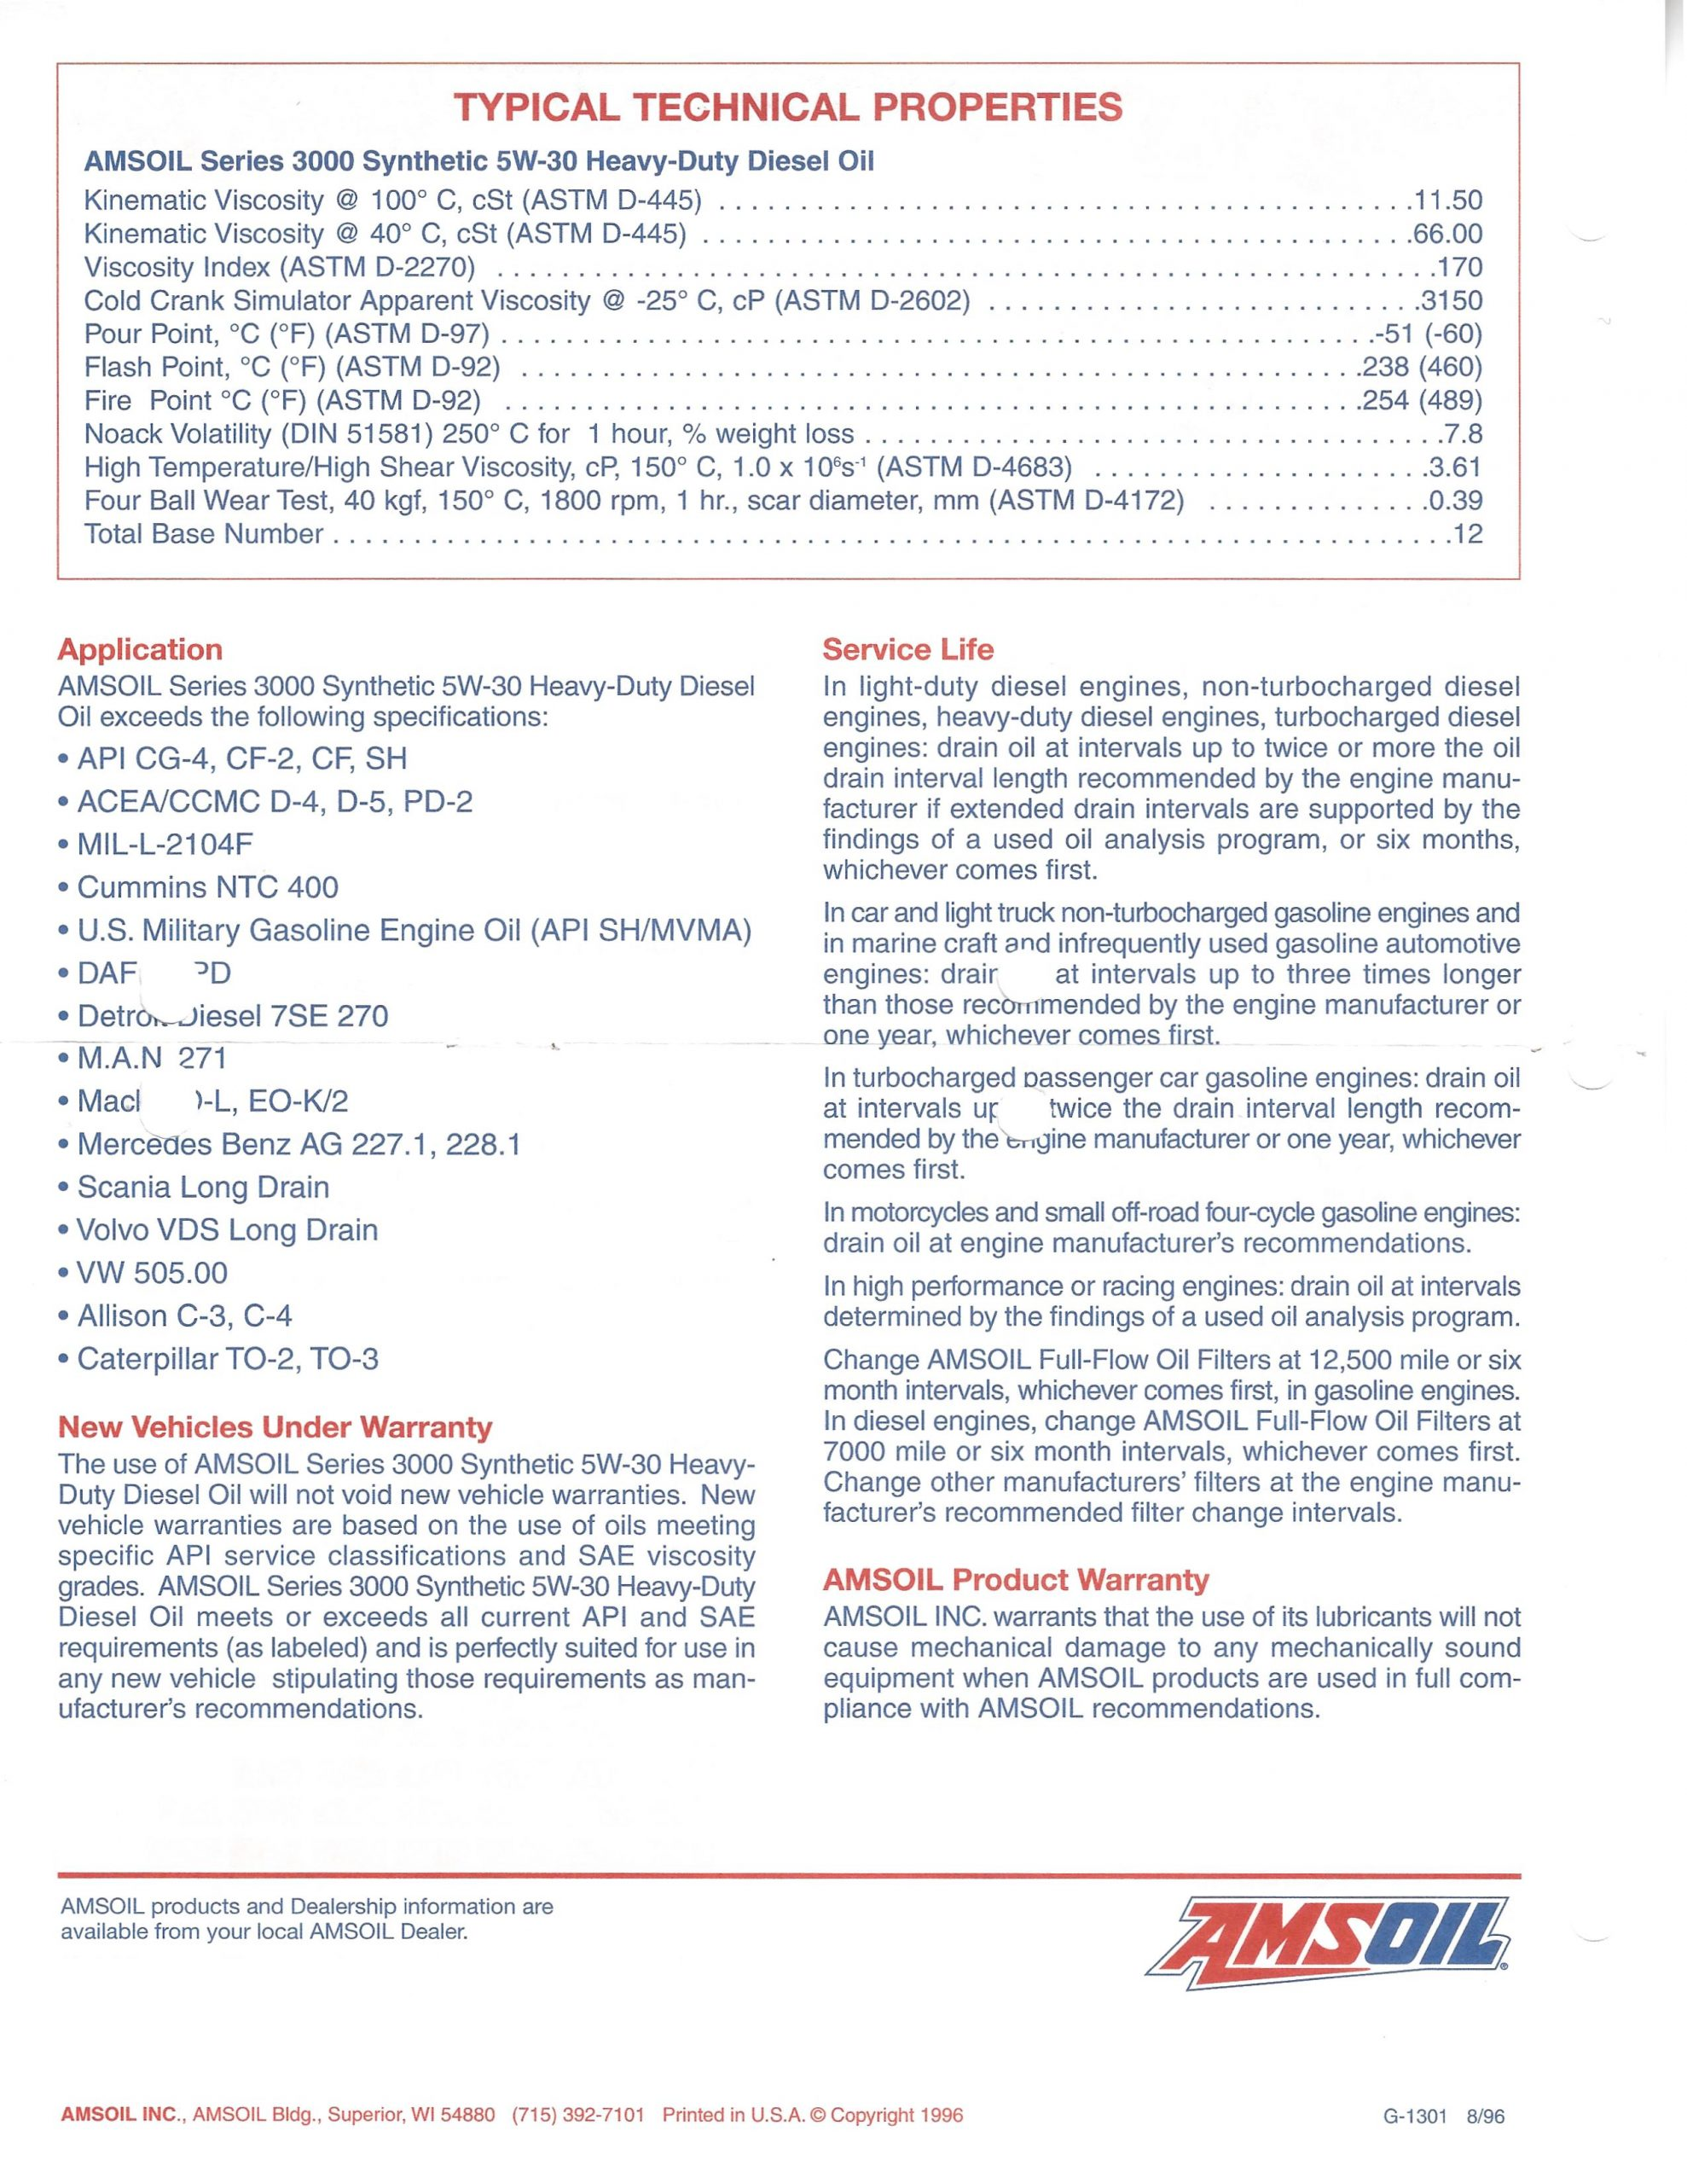 Back page of AMSOIL Data Sheet G1301 for Series 3000 Synthetic 5w30 Heavy Duty Diesel Oil dated 08/96